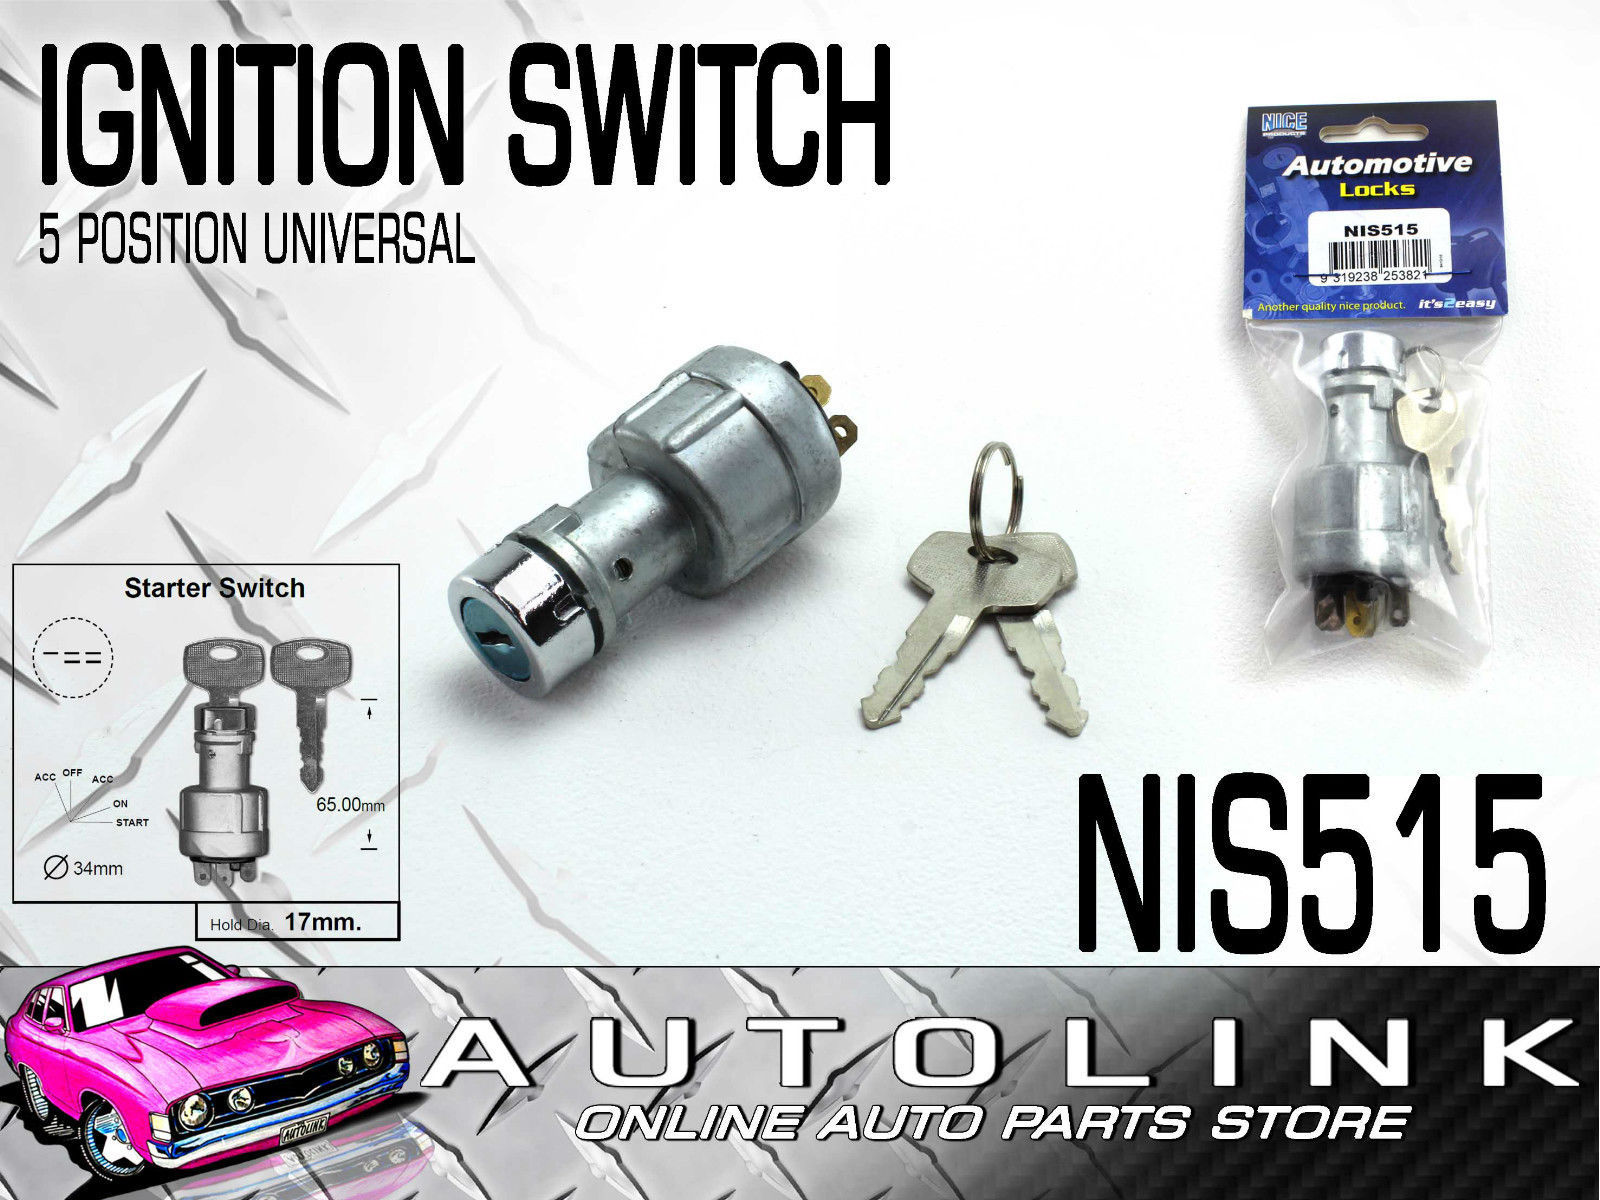 ignition starter switch universal 5 position mounting hole